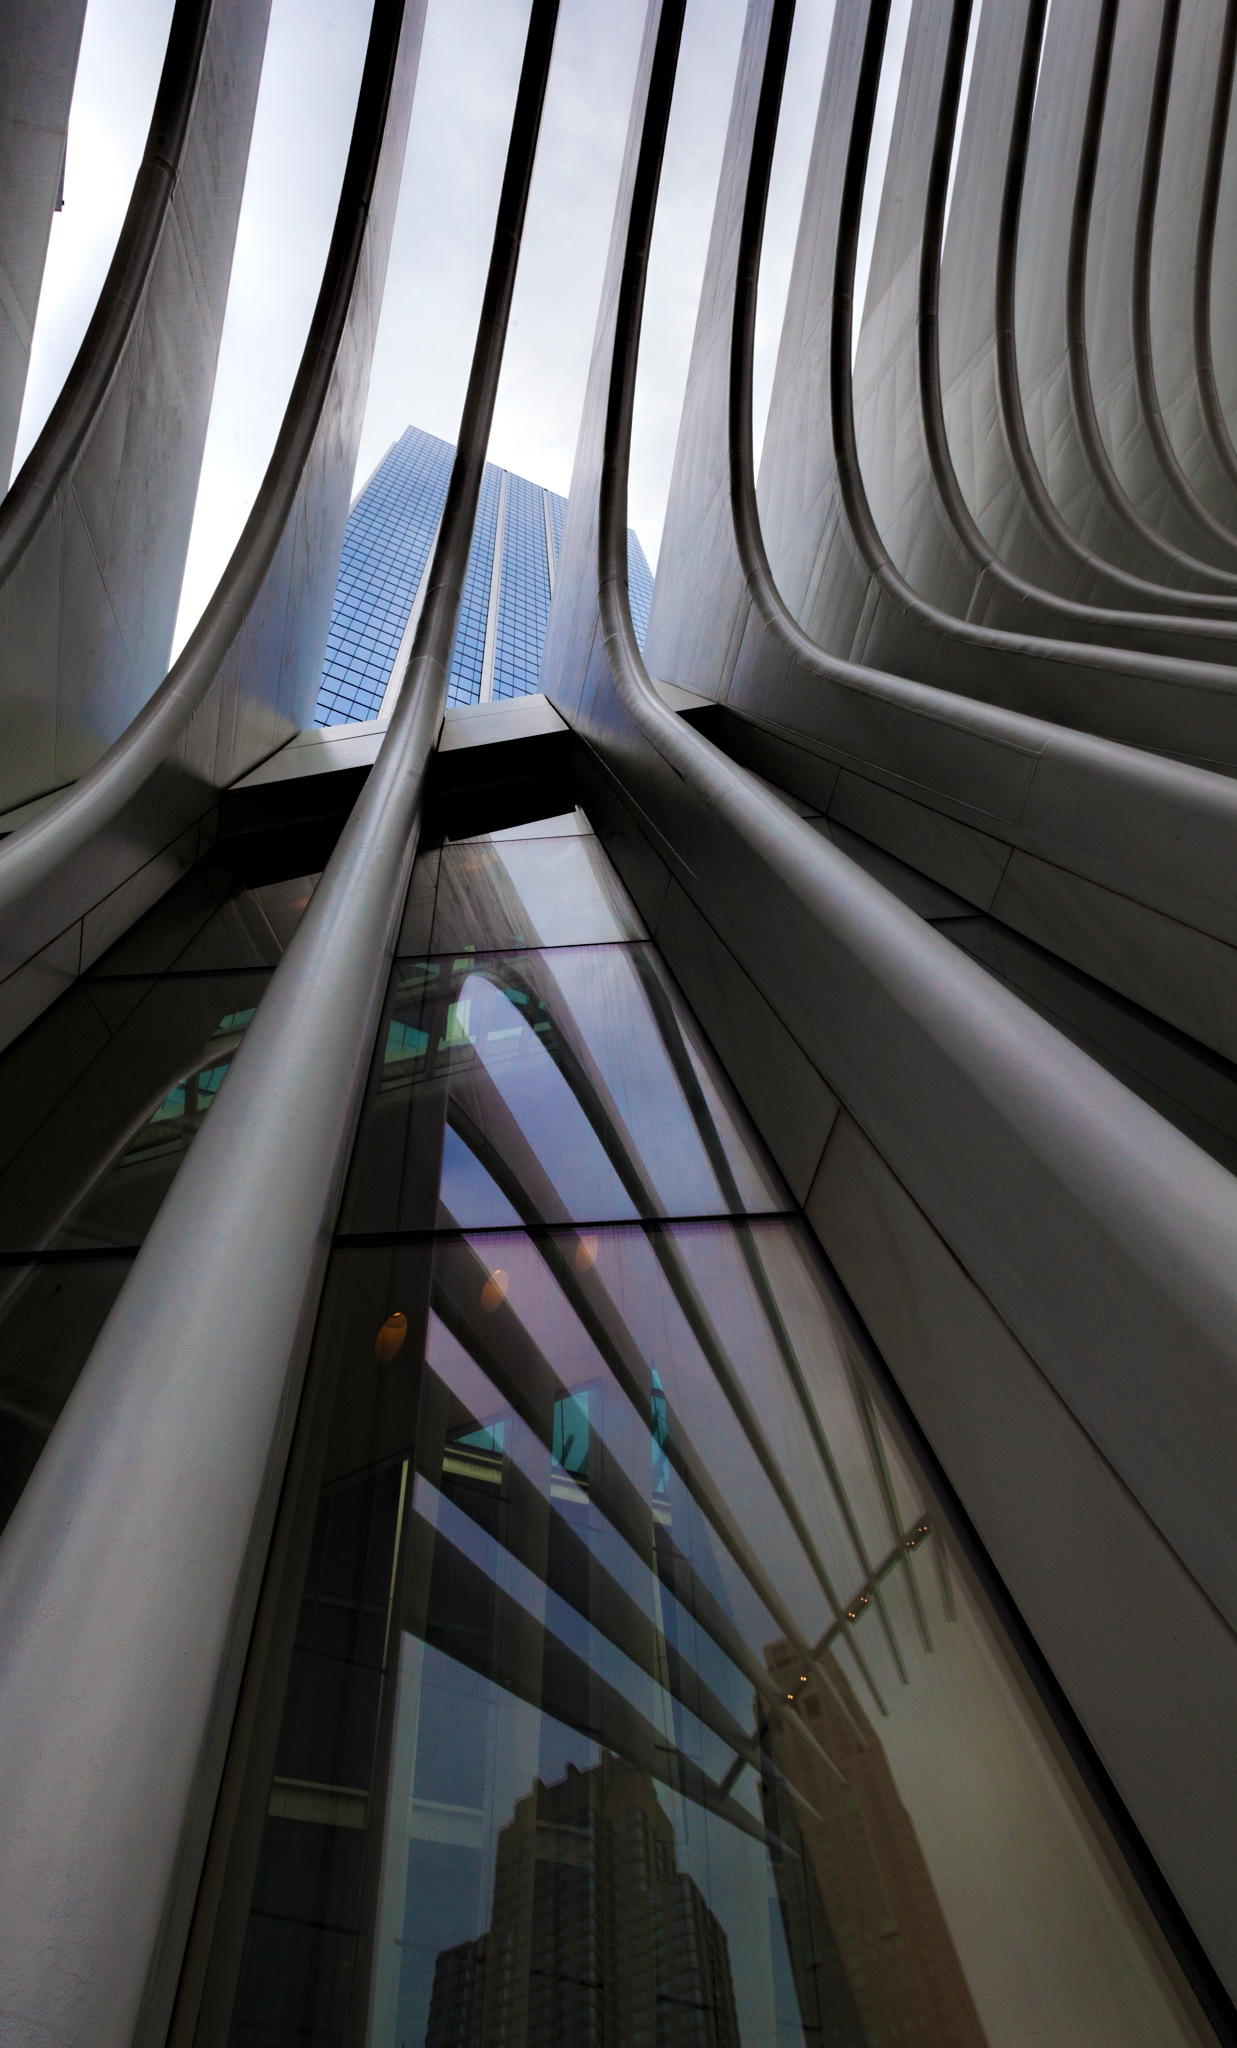 Detail Oculus Building NYC by robertullmann